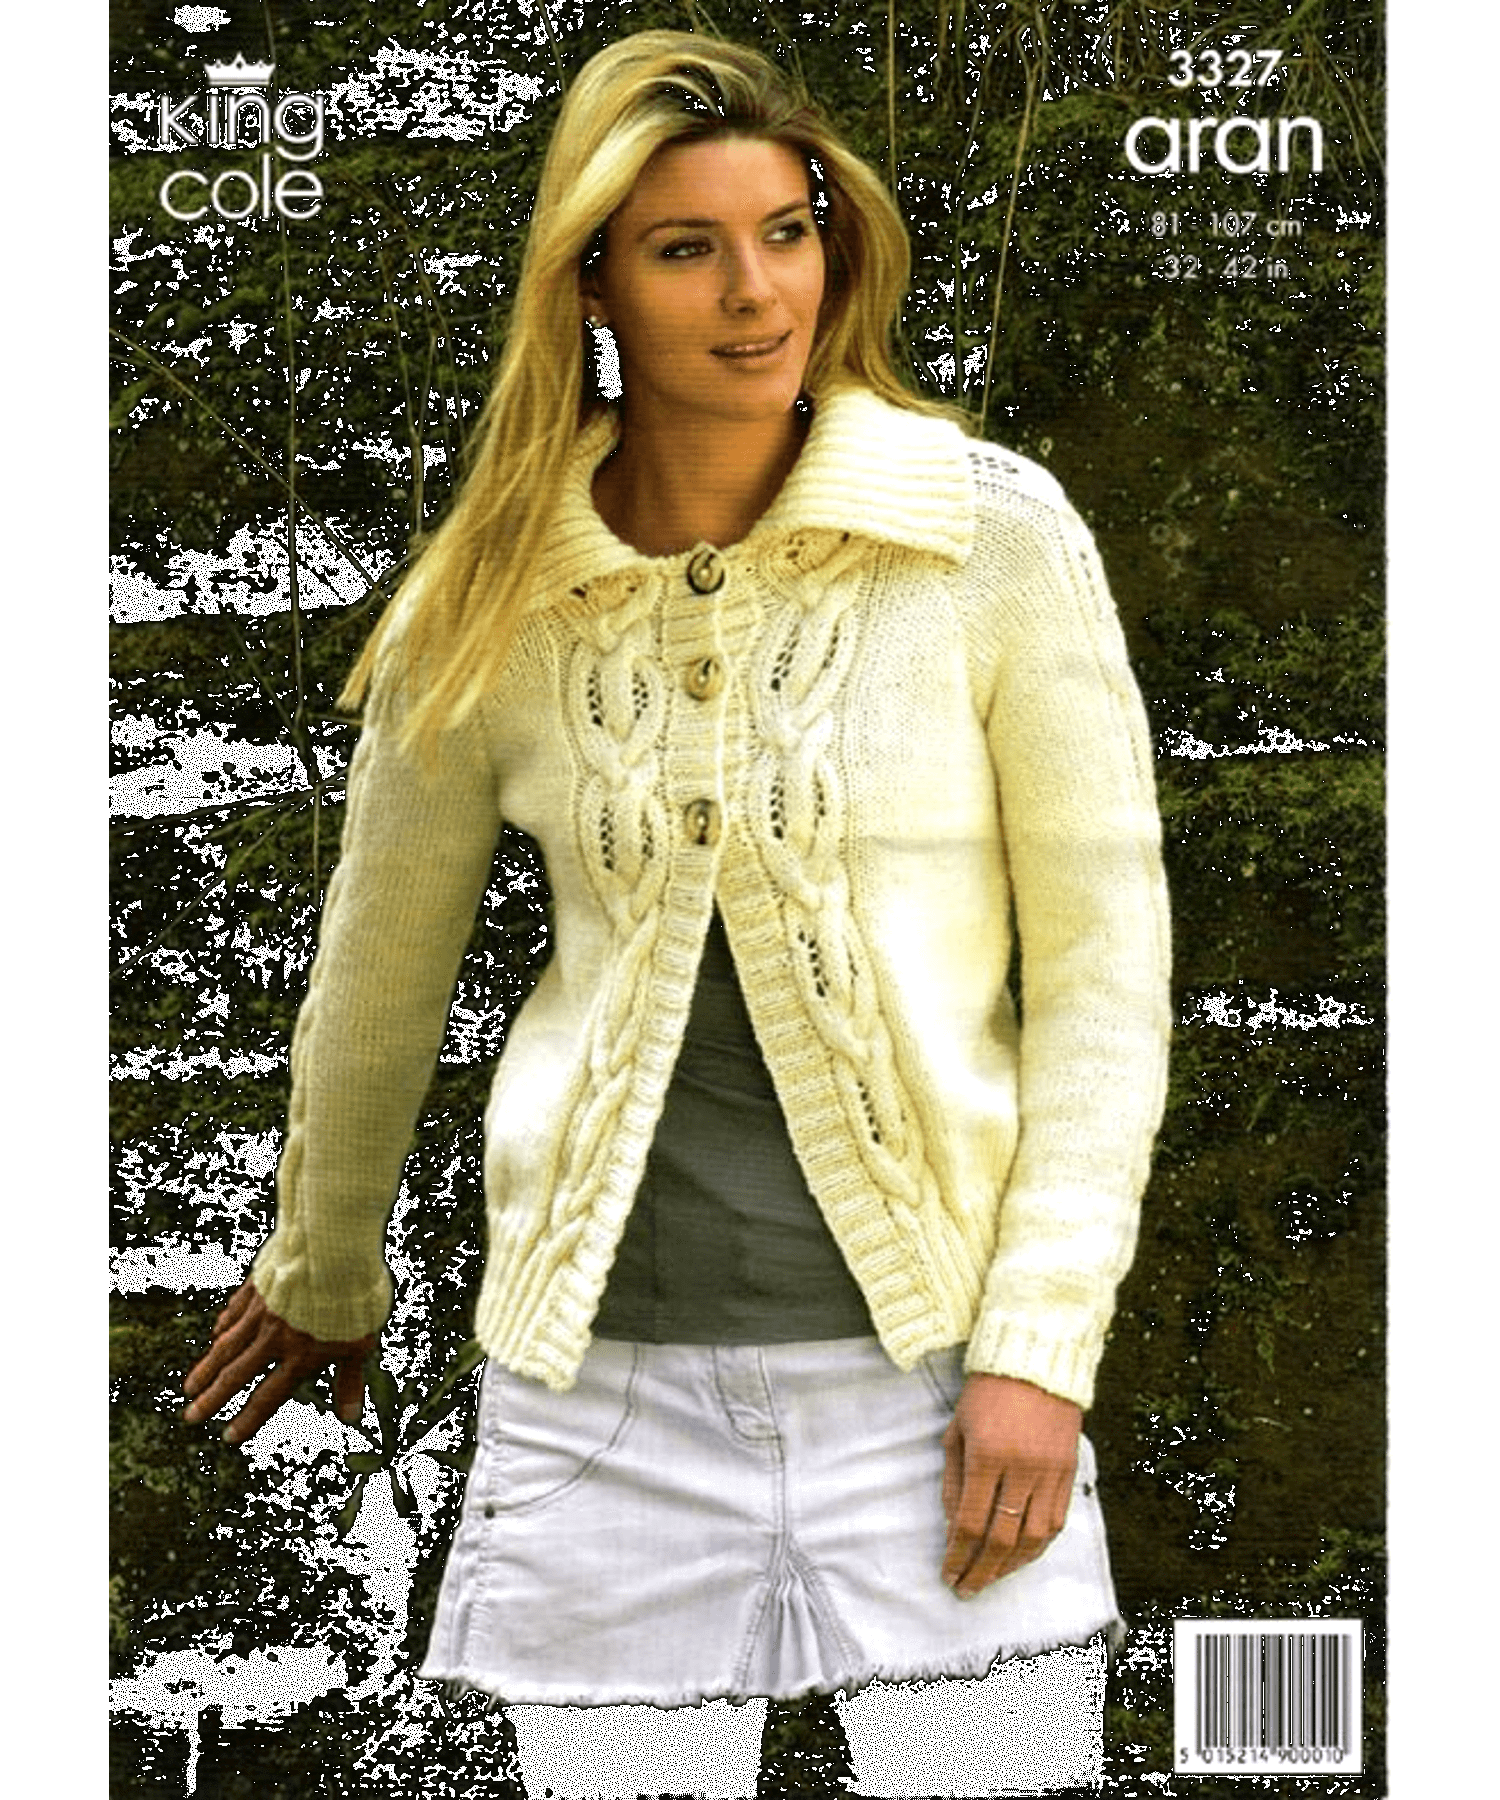 King Cole Aran Pattern 3327 - [Springwools] - Knitting - Irish Gifts